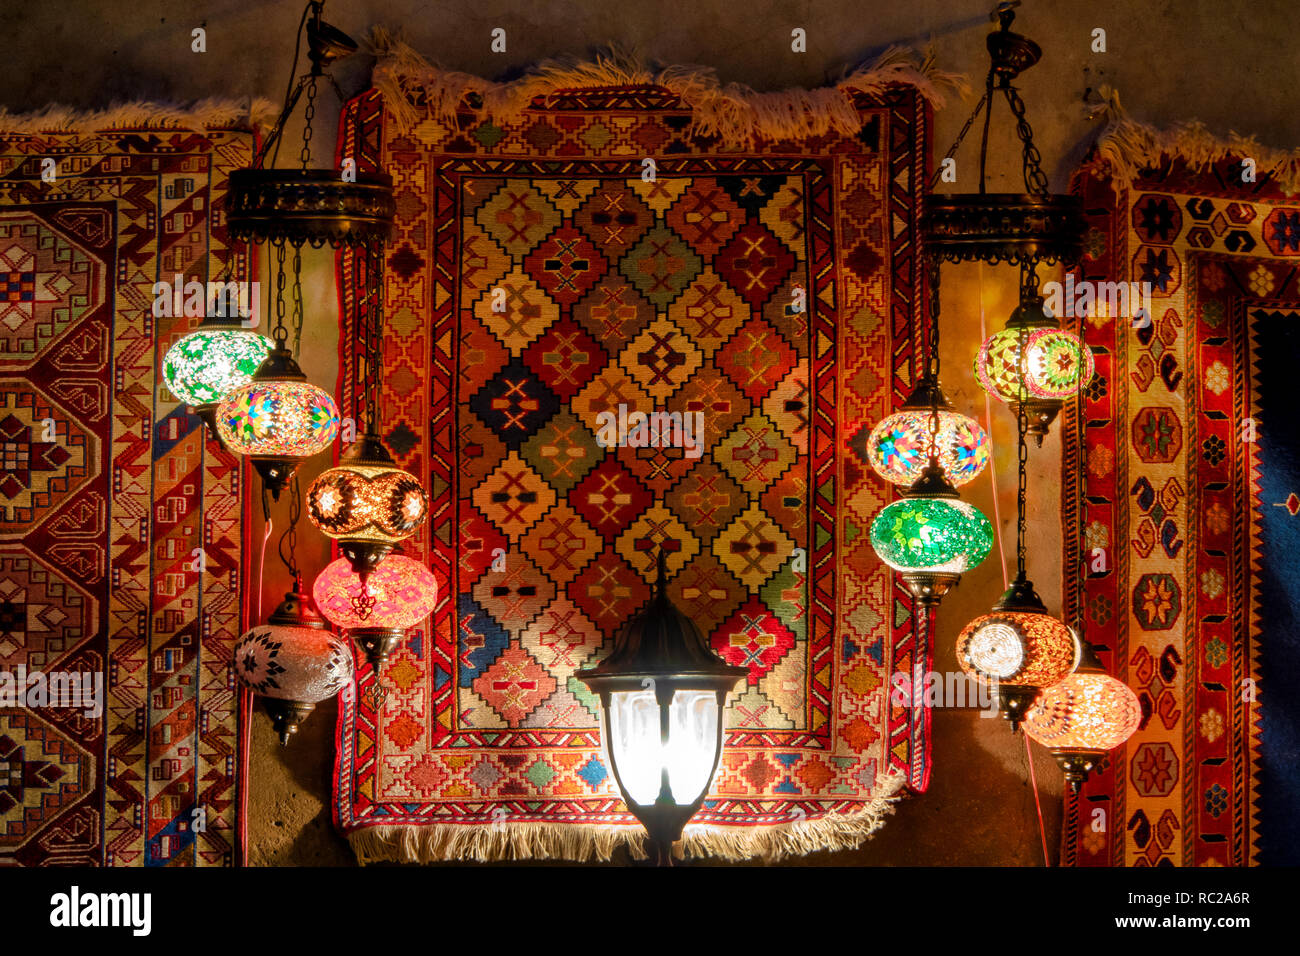 Turkish lamps and carpets on display in Icheri Sheher, Baku, Azerbaijan - Stock Image